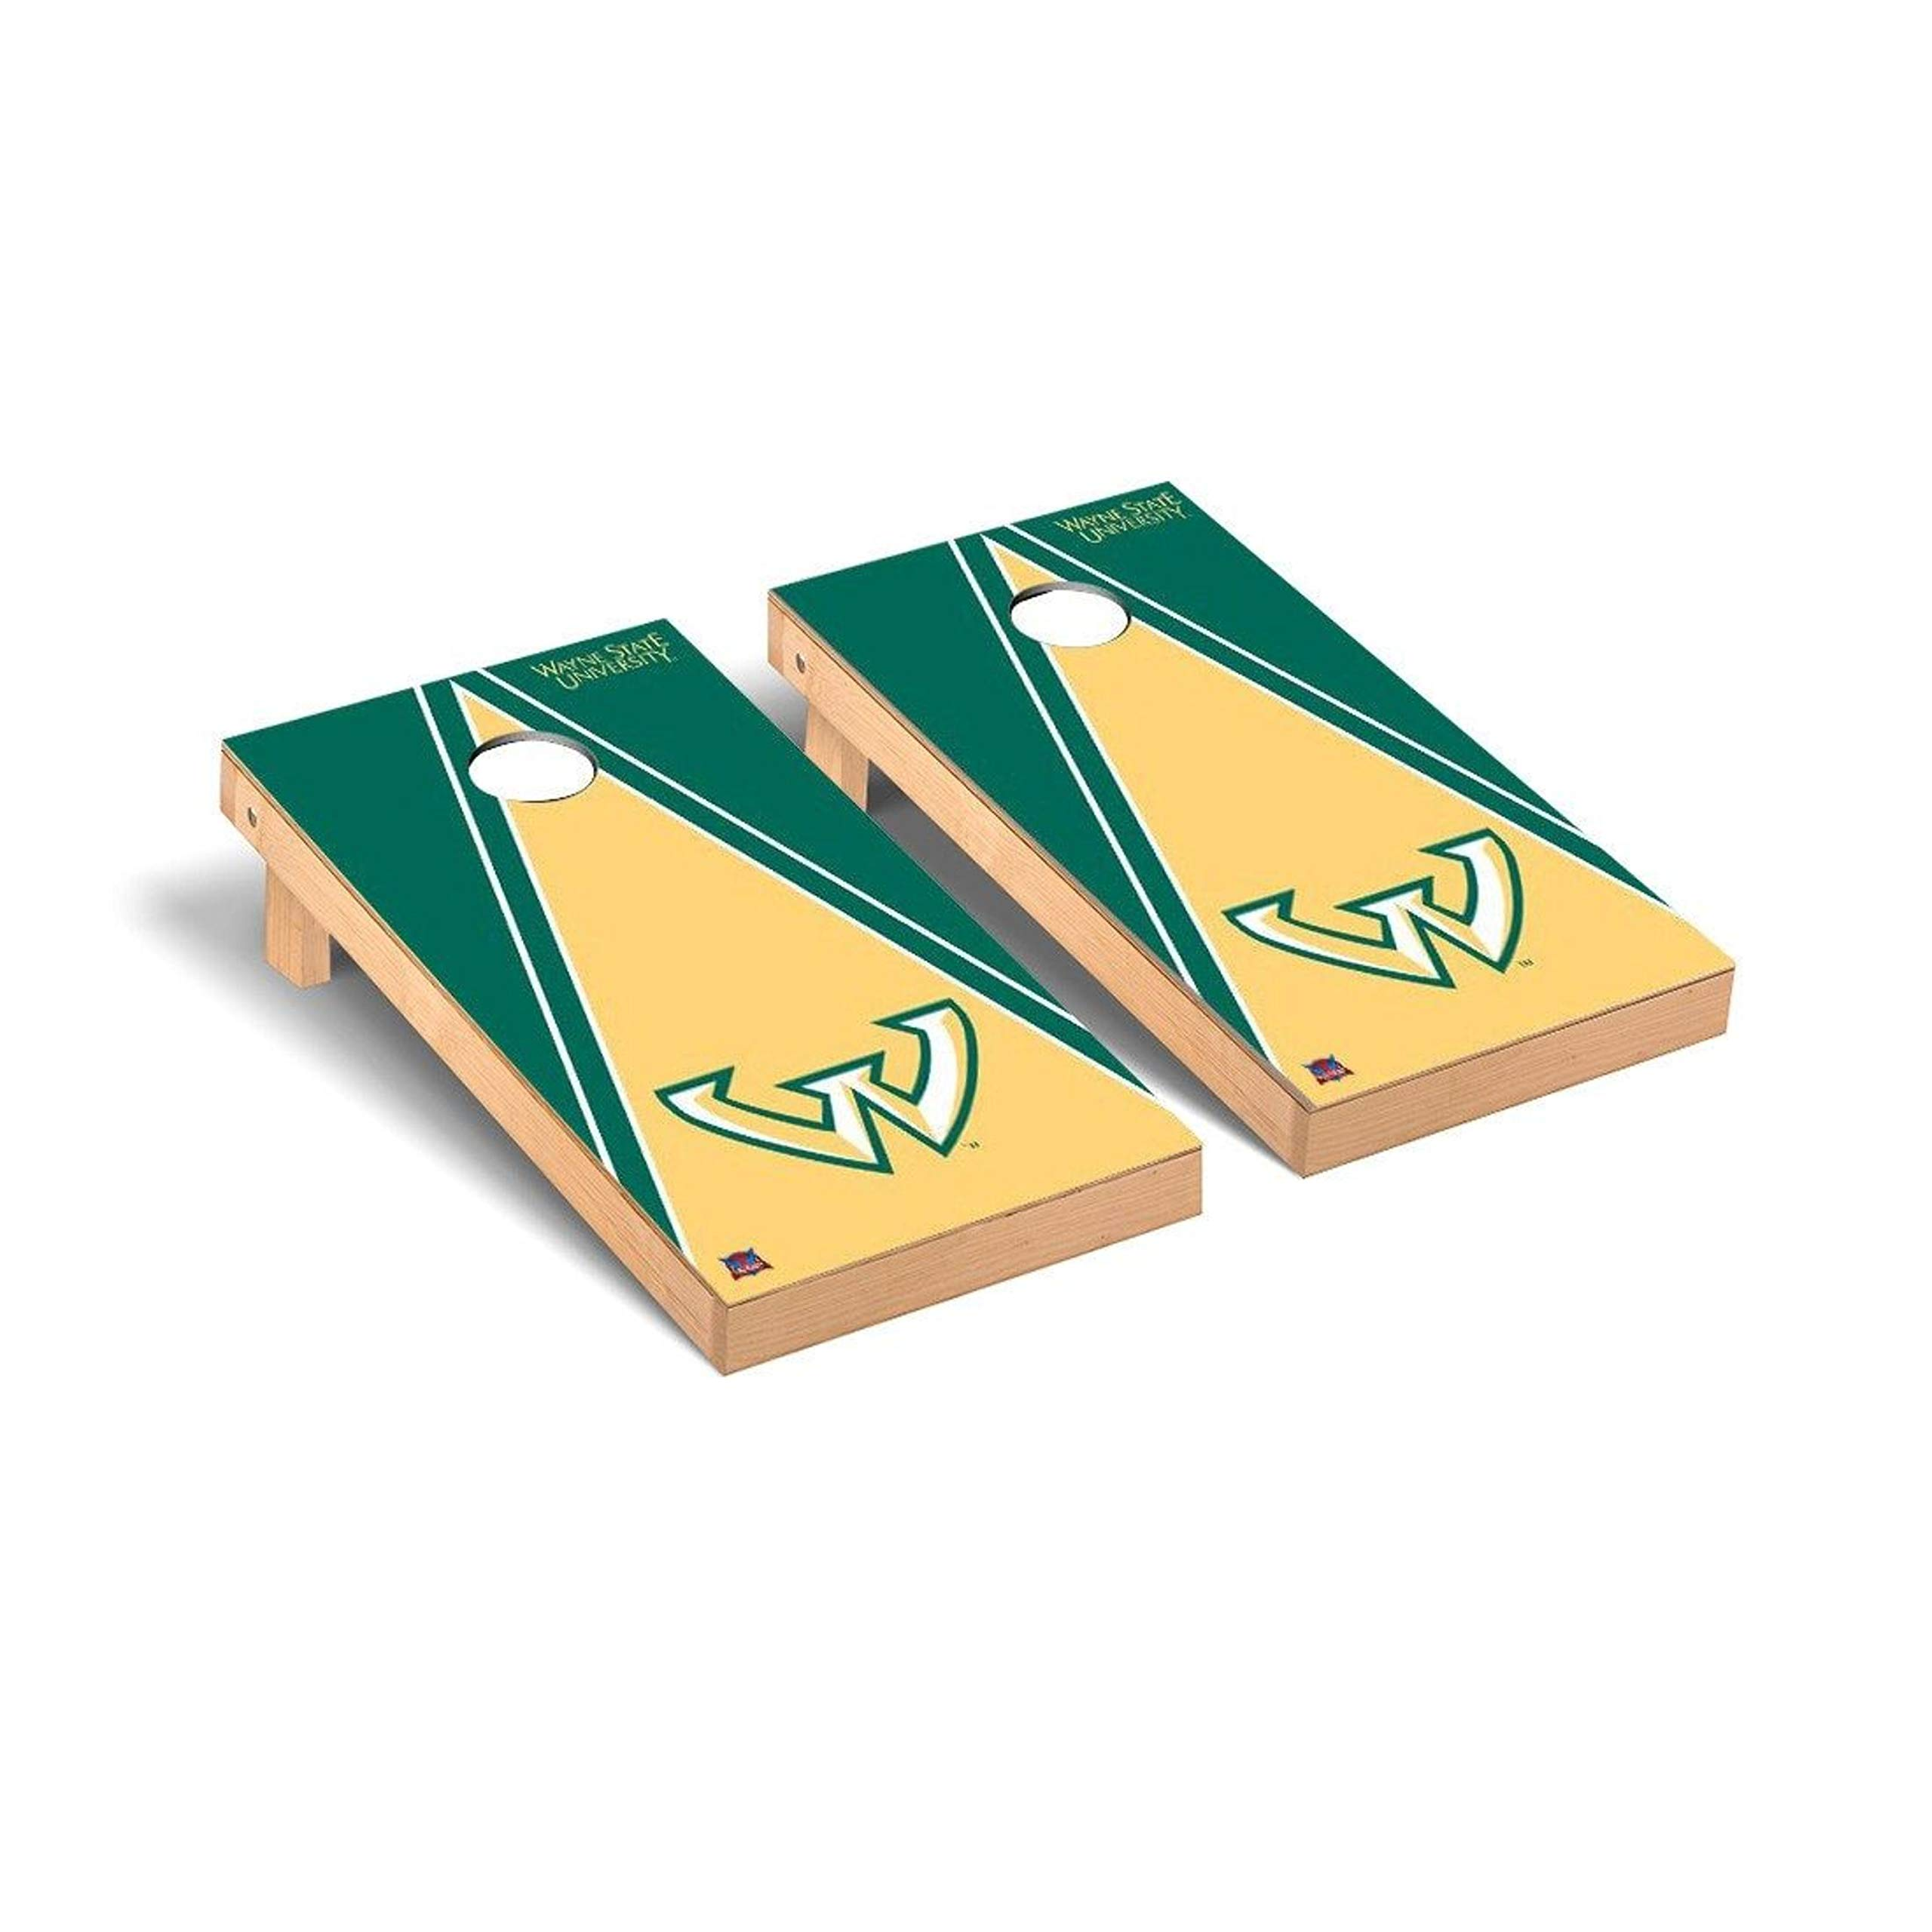 Victory Tailgate Regulation Collegiate NCAA Triangle Series Cornhole Board Set - 2 Boards, 8 Bags - Wayne State Warriors by Victory Tailgate